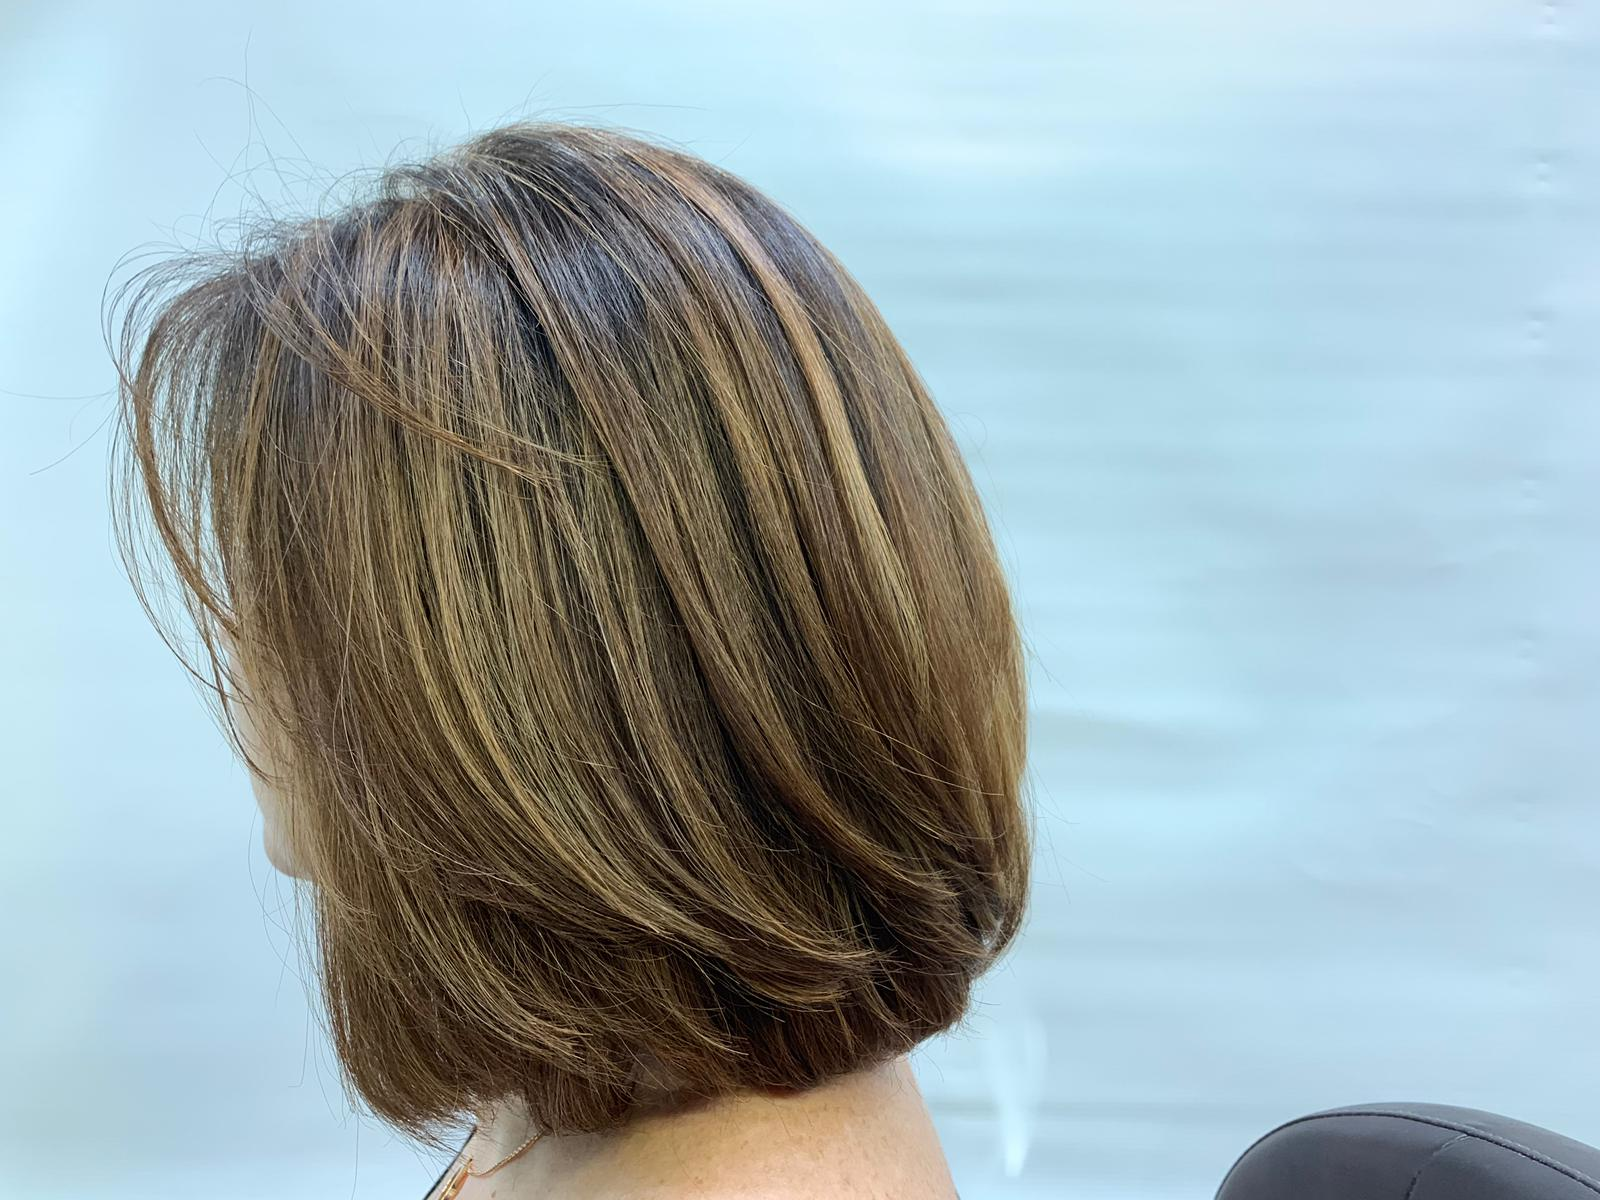 Keratin Treatment Removes Frizz Without Straightening Hair